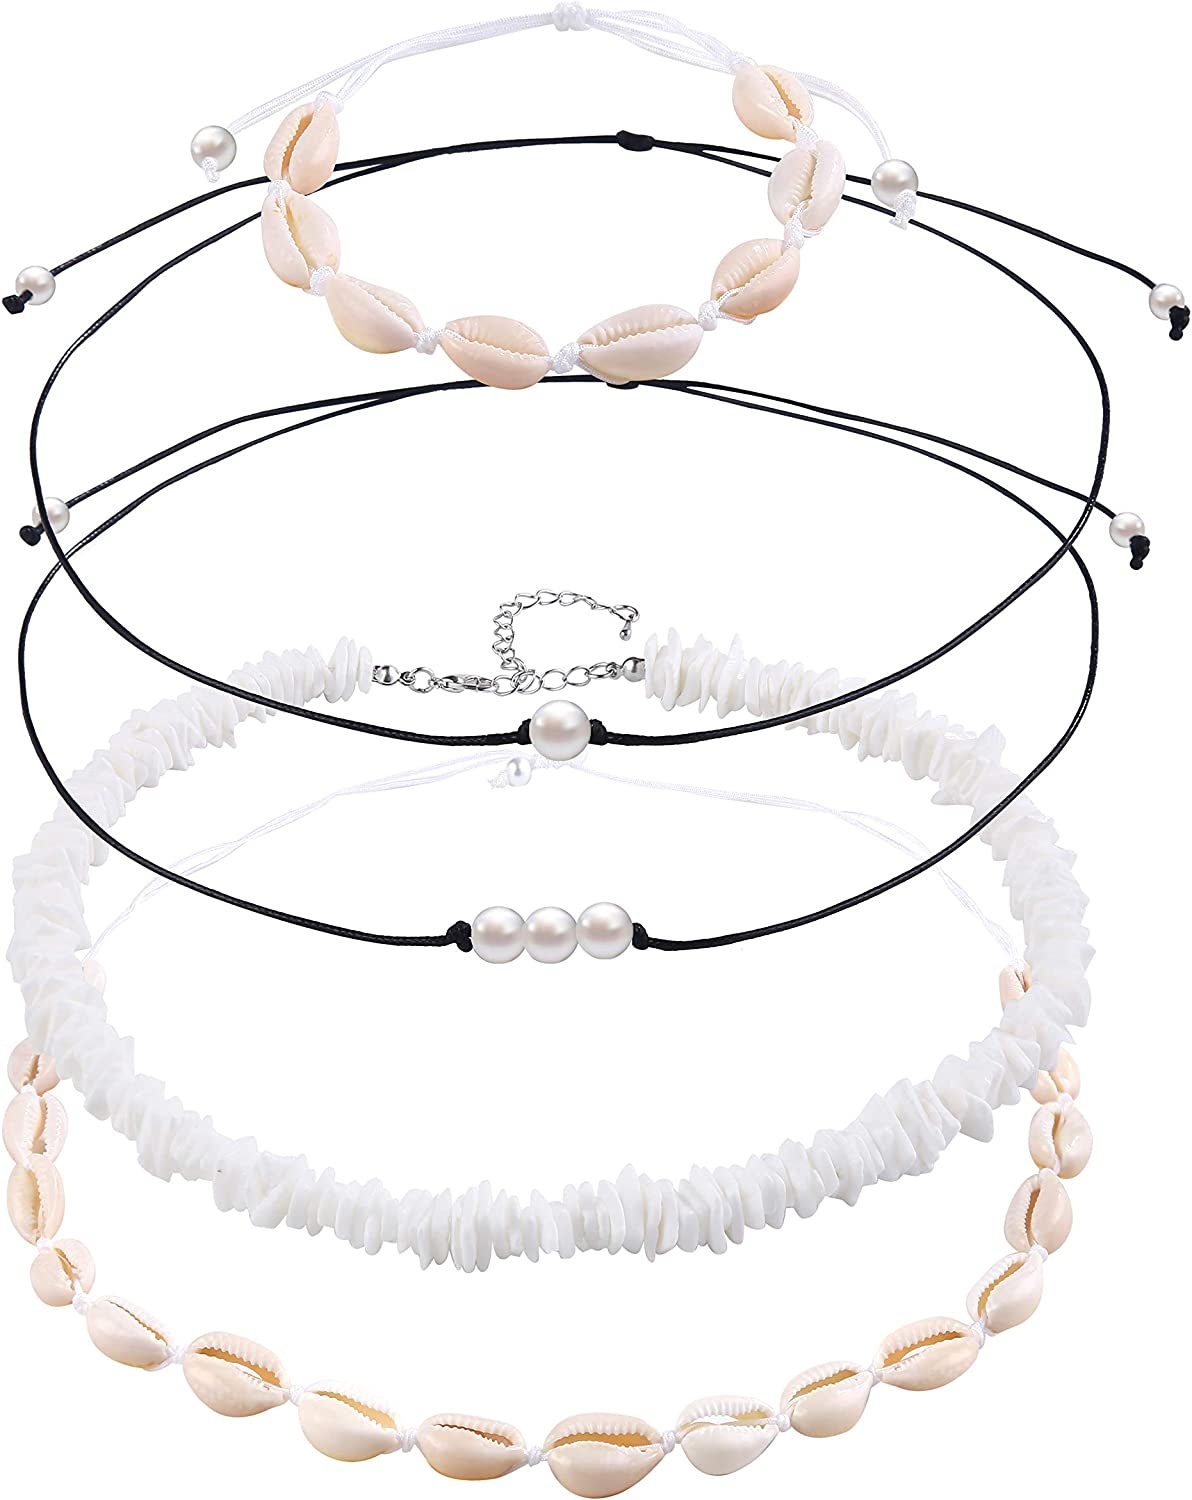 VANGAY Pearl Shell Necklace Choker for Women Girls Handmade Puka Seashell Necklace Jewelry Hawaiian Beach Necklace Bracelet Set